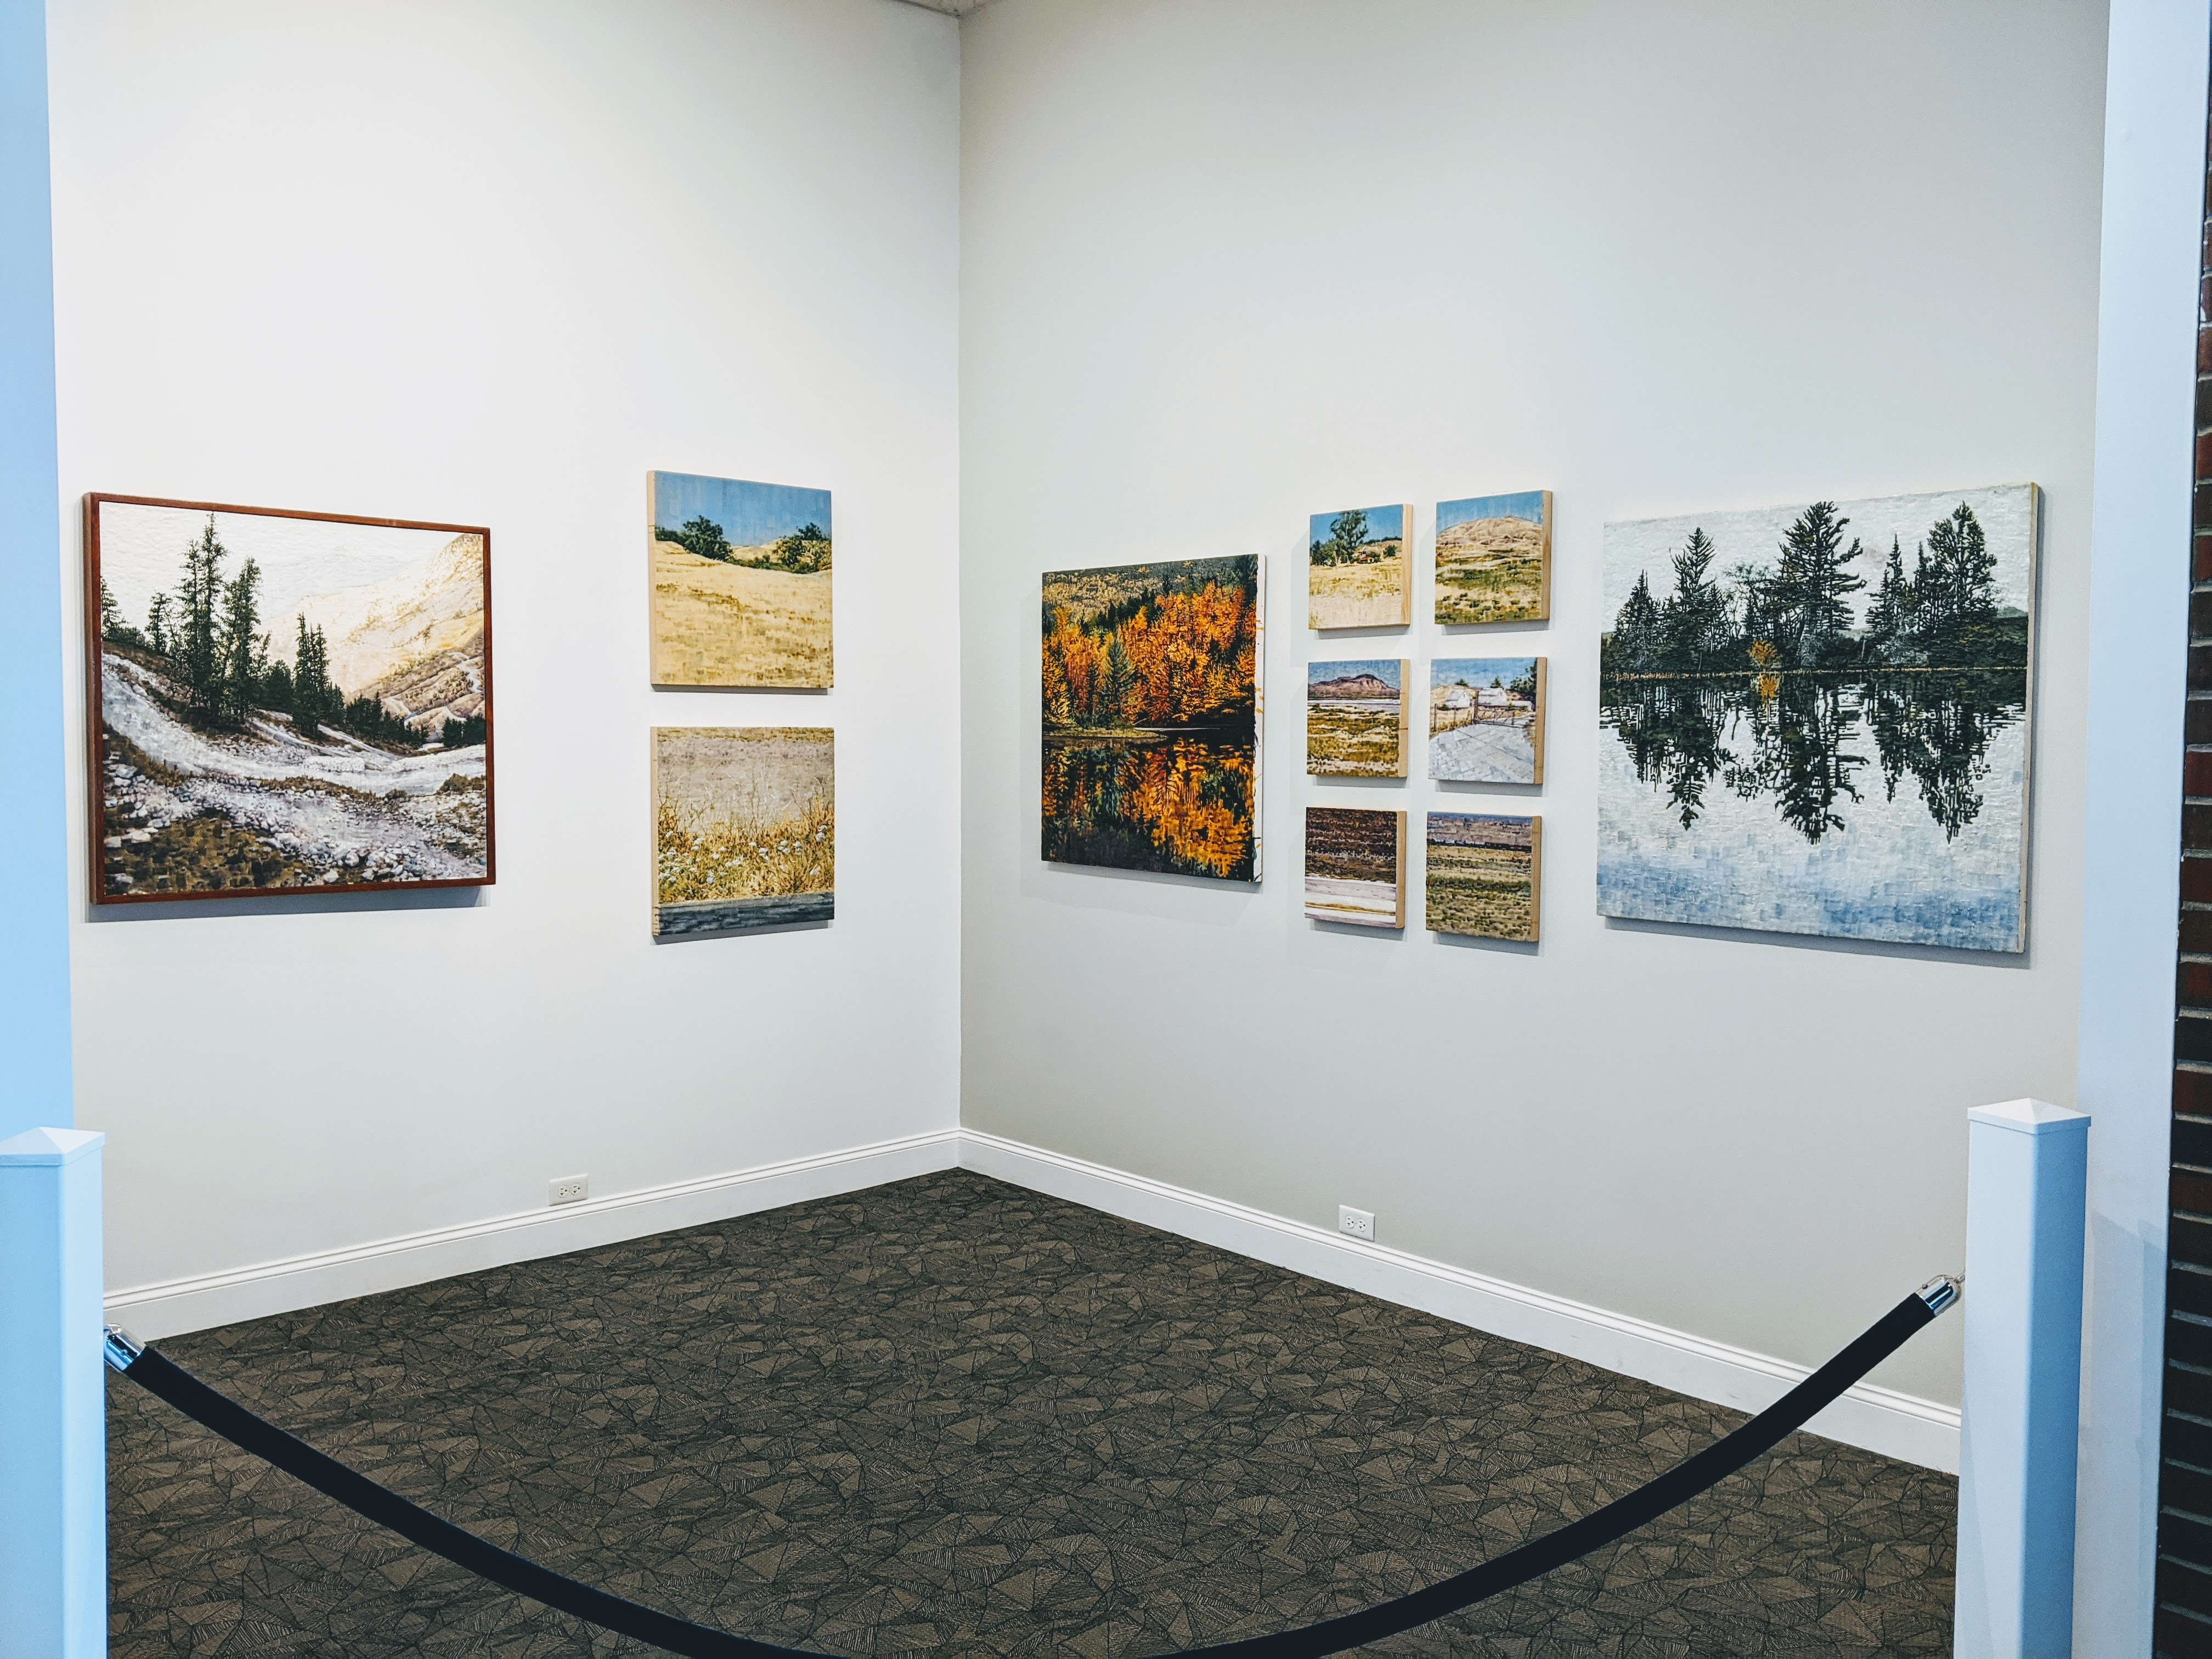 Image of Earl Schofield's art exhibition